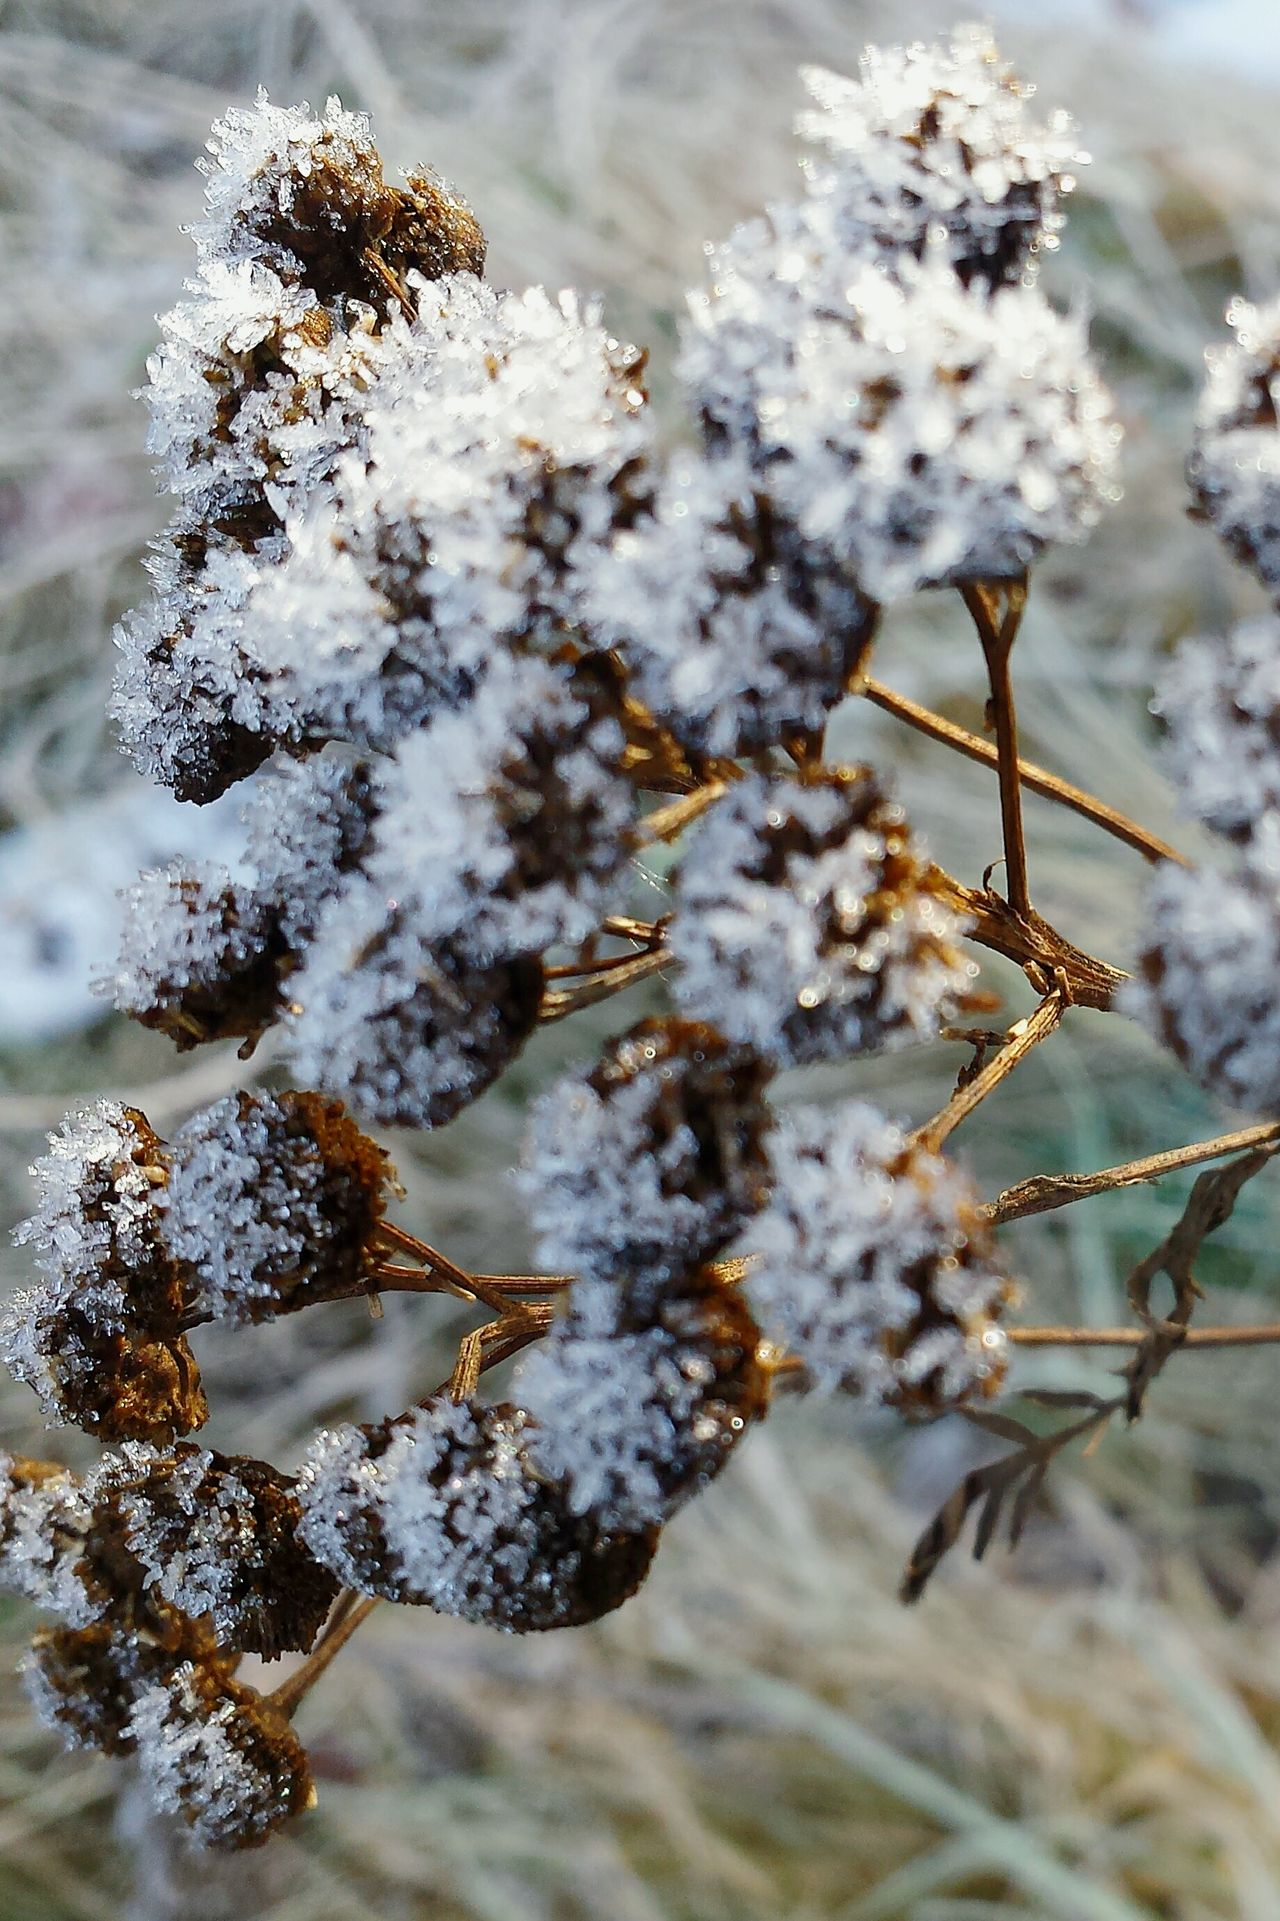 Nature Beauty In Nature Close-up Outdoors Growth Day No People Macro Beauty Cold Temperature Winter Focus On Details left, Ladyphotographerofthemonth Iced Rauhreif Ice Crystals Eiskristalle Ice Capped Sugar Like Macro Fragility Beauty In Nature Nature Macro Nature Freshness Grasses Are Beautiful Too